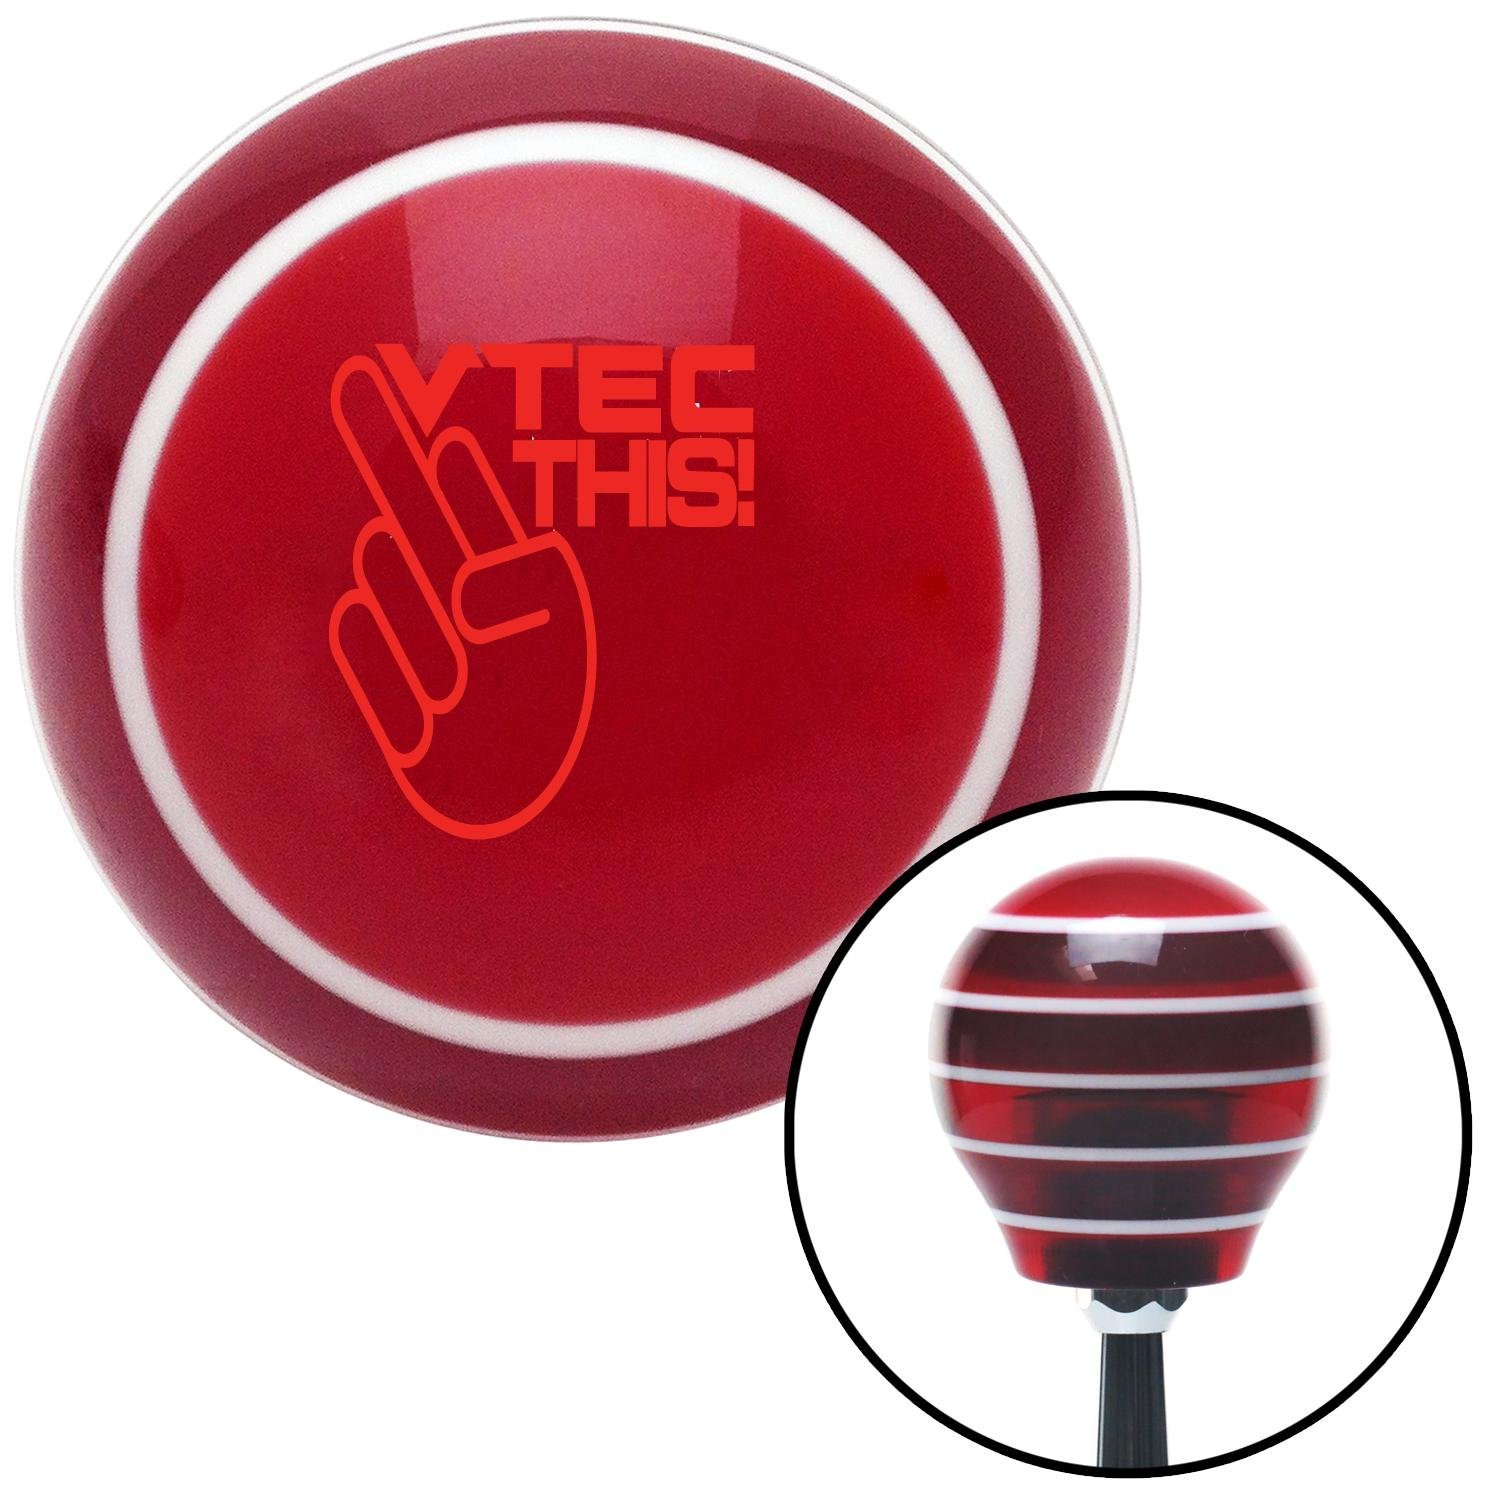 Red VTEC This! American Shifter 114926 Red Stripe Shift Knob with M16 x 1.5 Insert